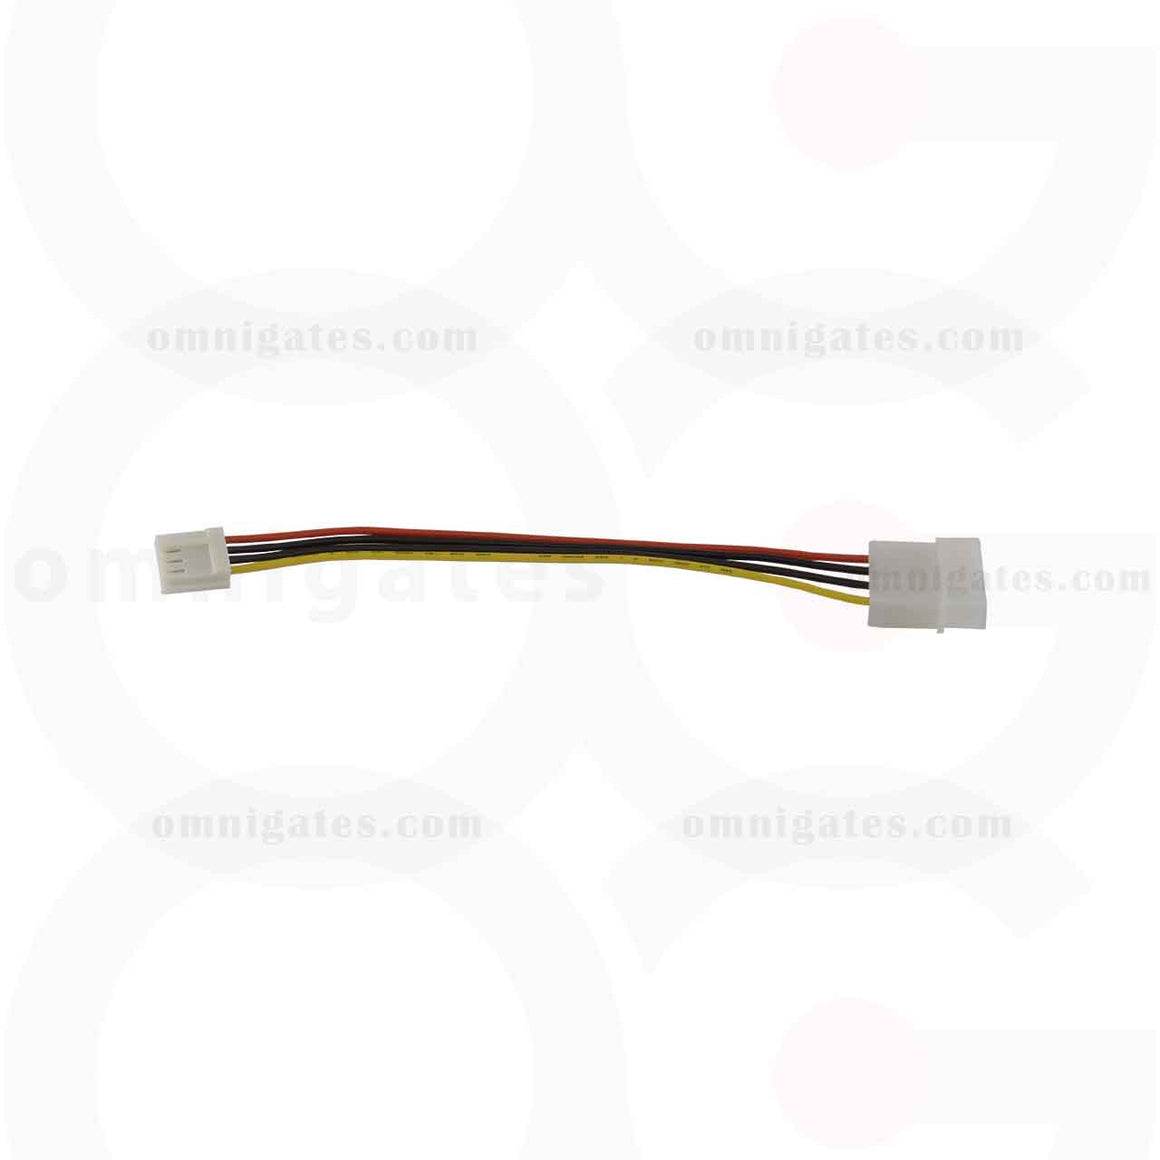 5.25 Male to 3.5 Female, Internal DC Adaptor Cable, 6 inches